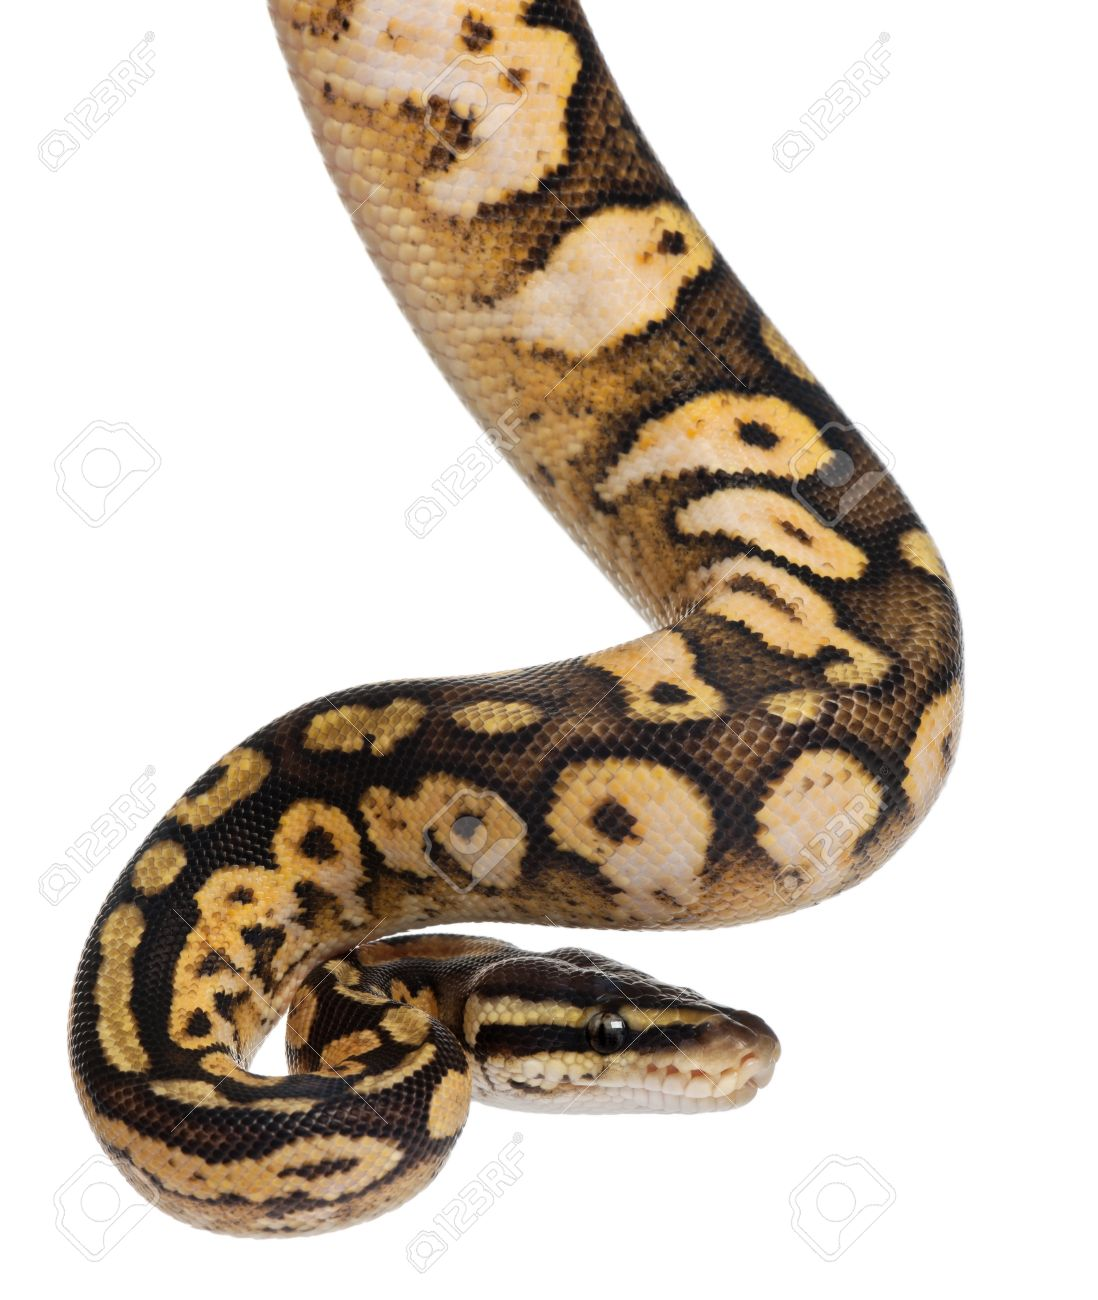 Ball Python clipart #2, Download drawings